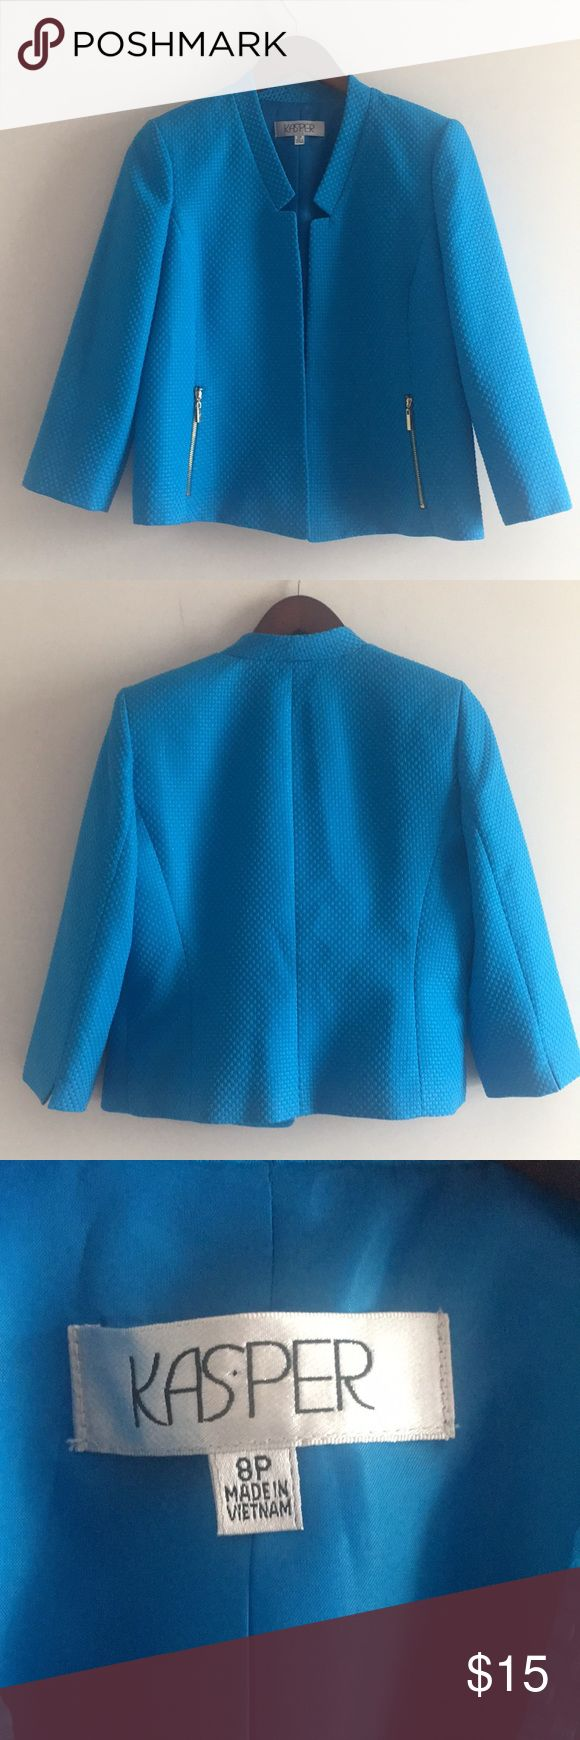 Bright Collarless Blazer Perfect petite blazer to brighten your day! Excellent condition! 100 percent polyester. Dry Clean Only. Priced to sell Kasper Jackets & Coats Blazers